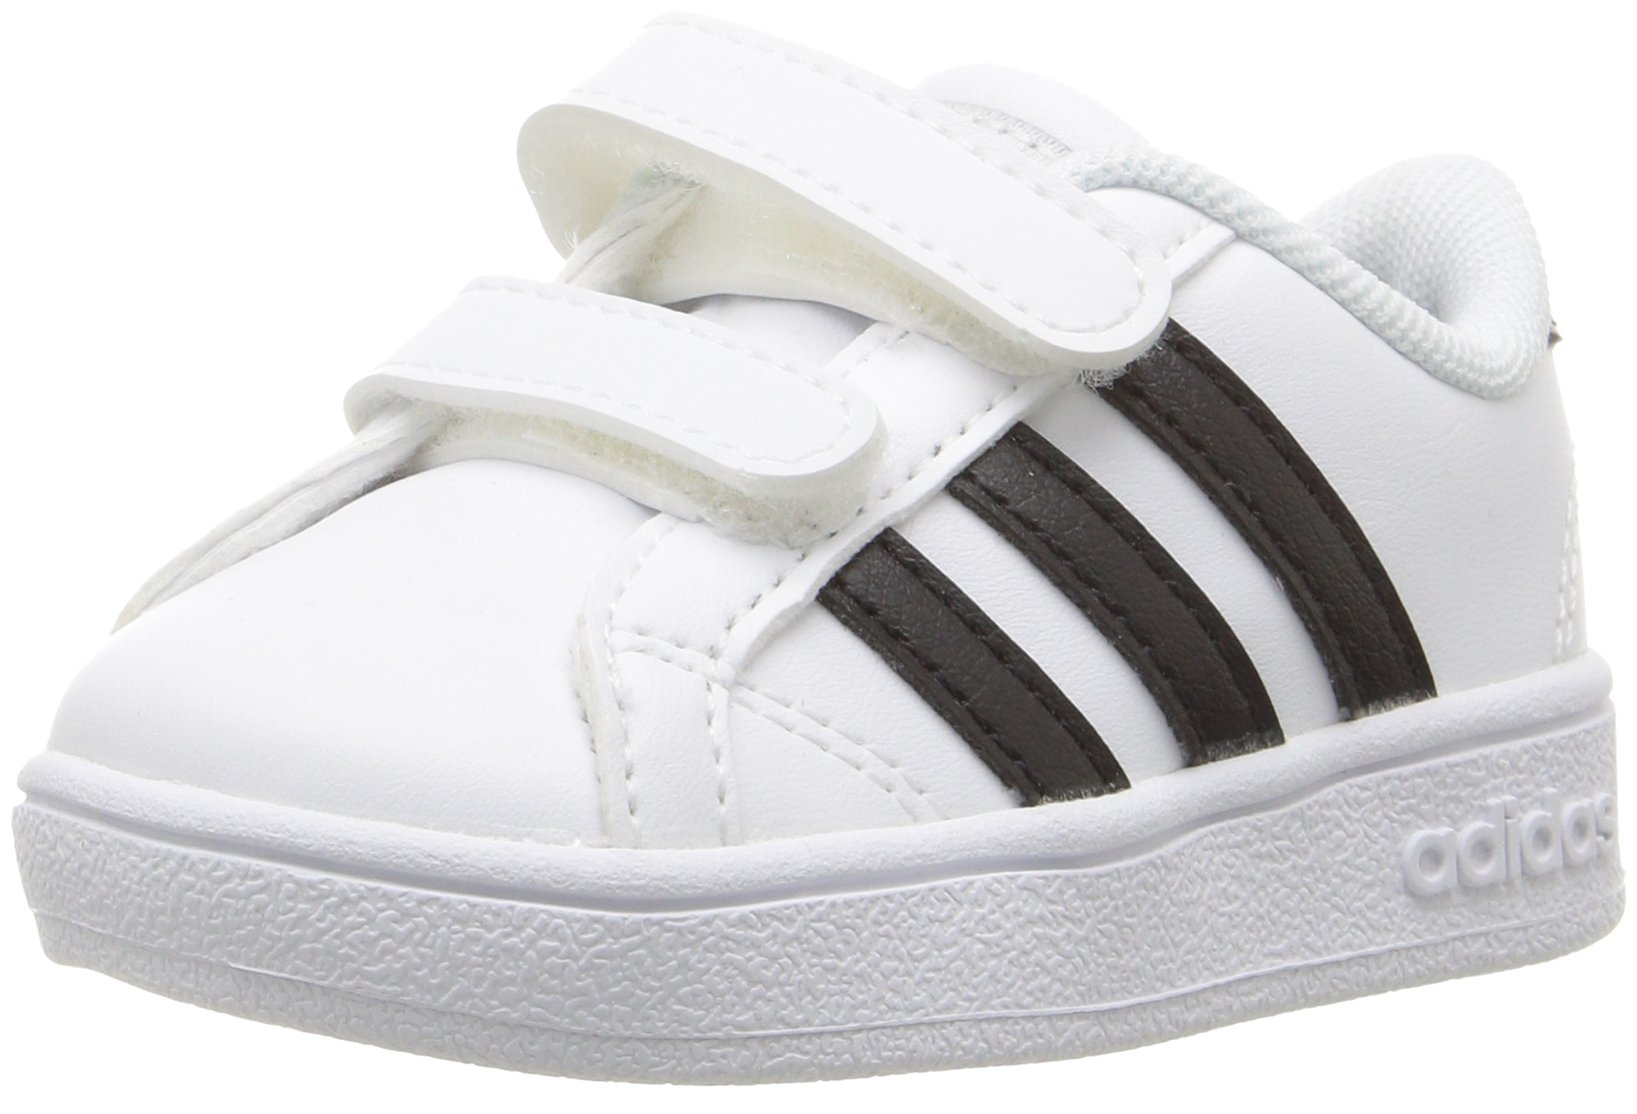 adidas Performance Baby Baseline Sneaker, White/Black/White, 6.5K M US Toddler by adidas (Image #1)